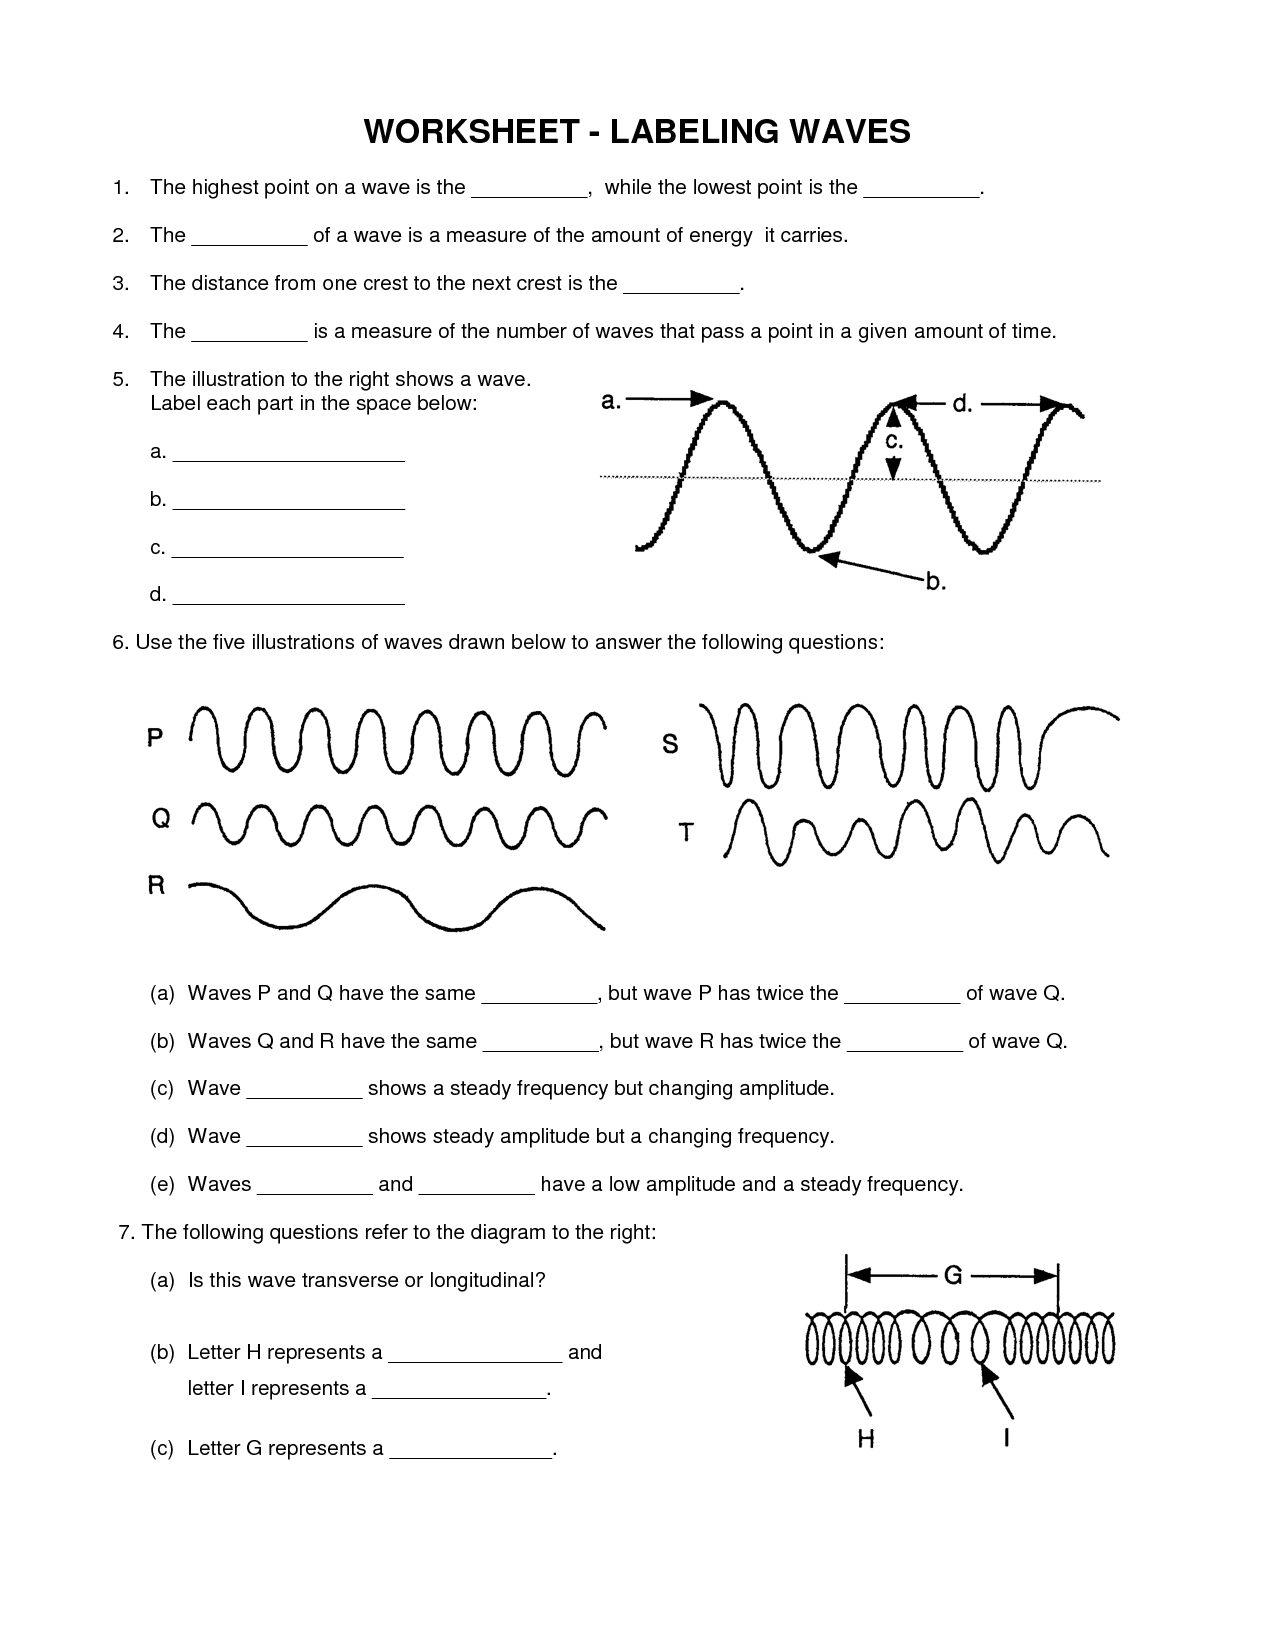 8 Best Images Of Light And Sound Waves Worksheets